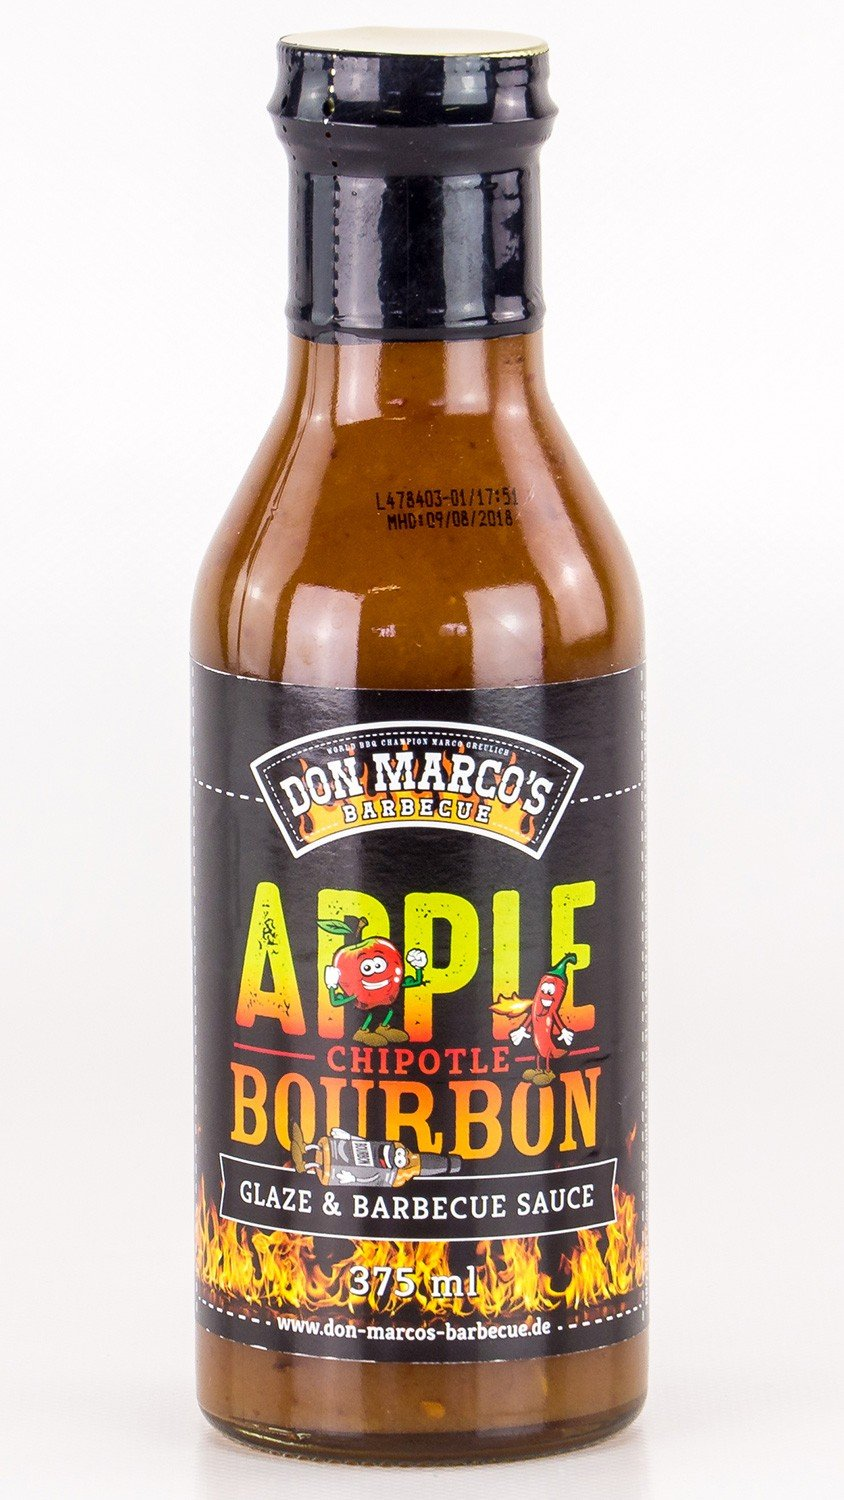 Don Marco s - Apple Chip otle Bourbon Glaze & Salsa Barbacoa: Amazon.es: Alimentación y bebidas